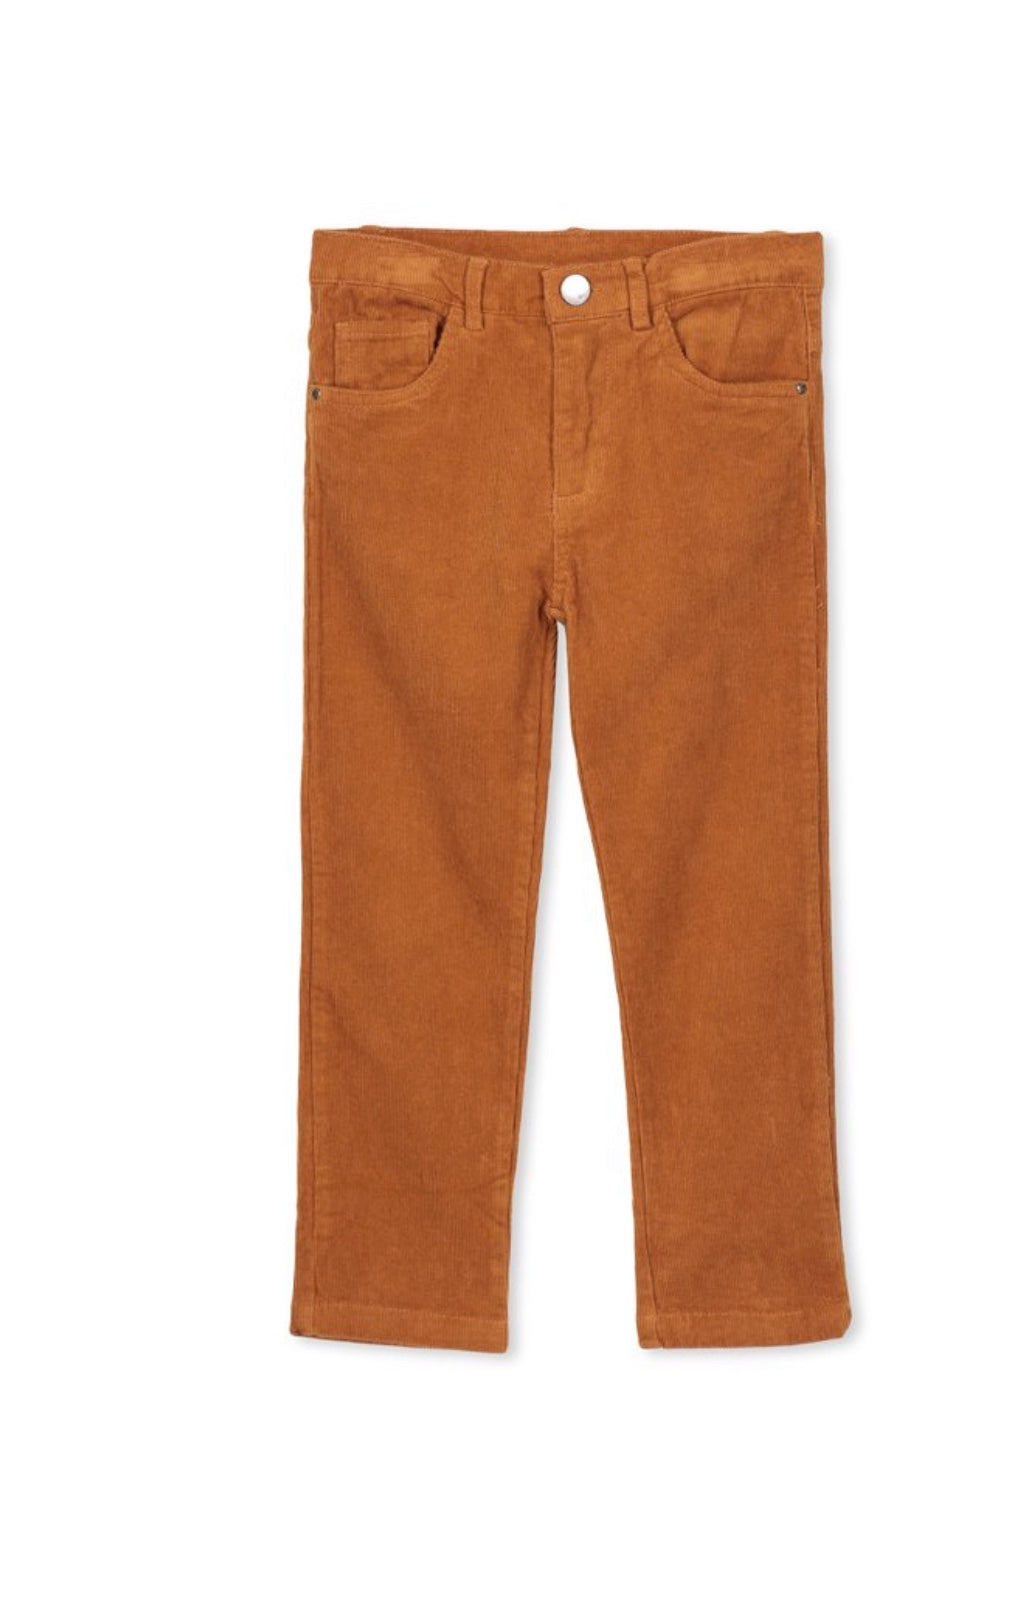 Milky Toffee Cord Jean